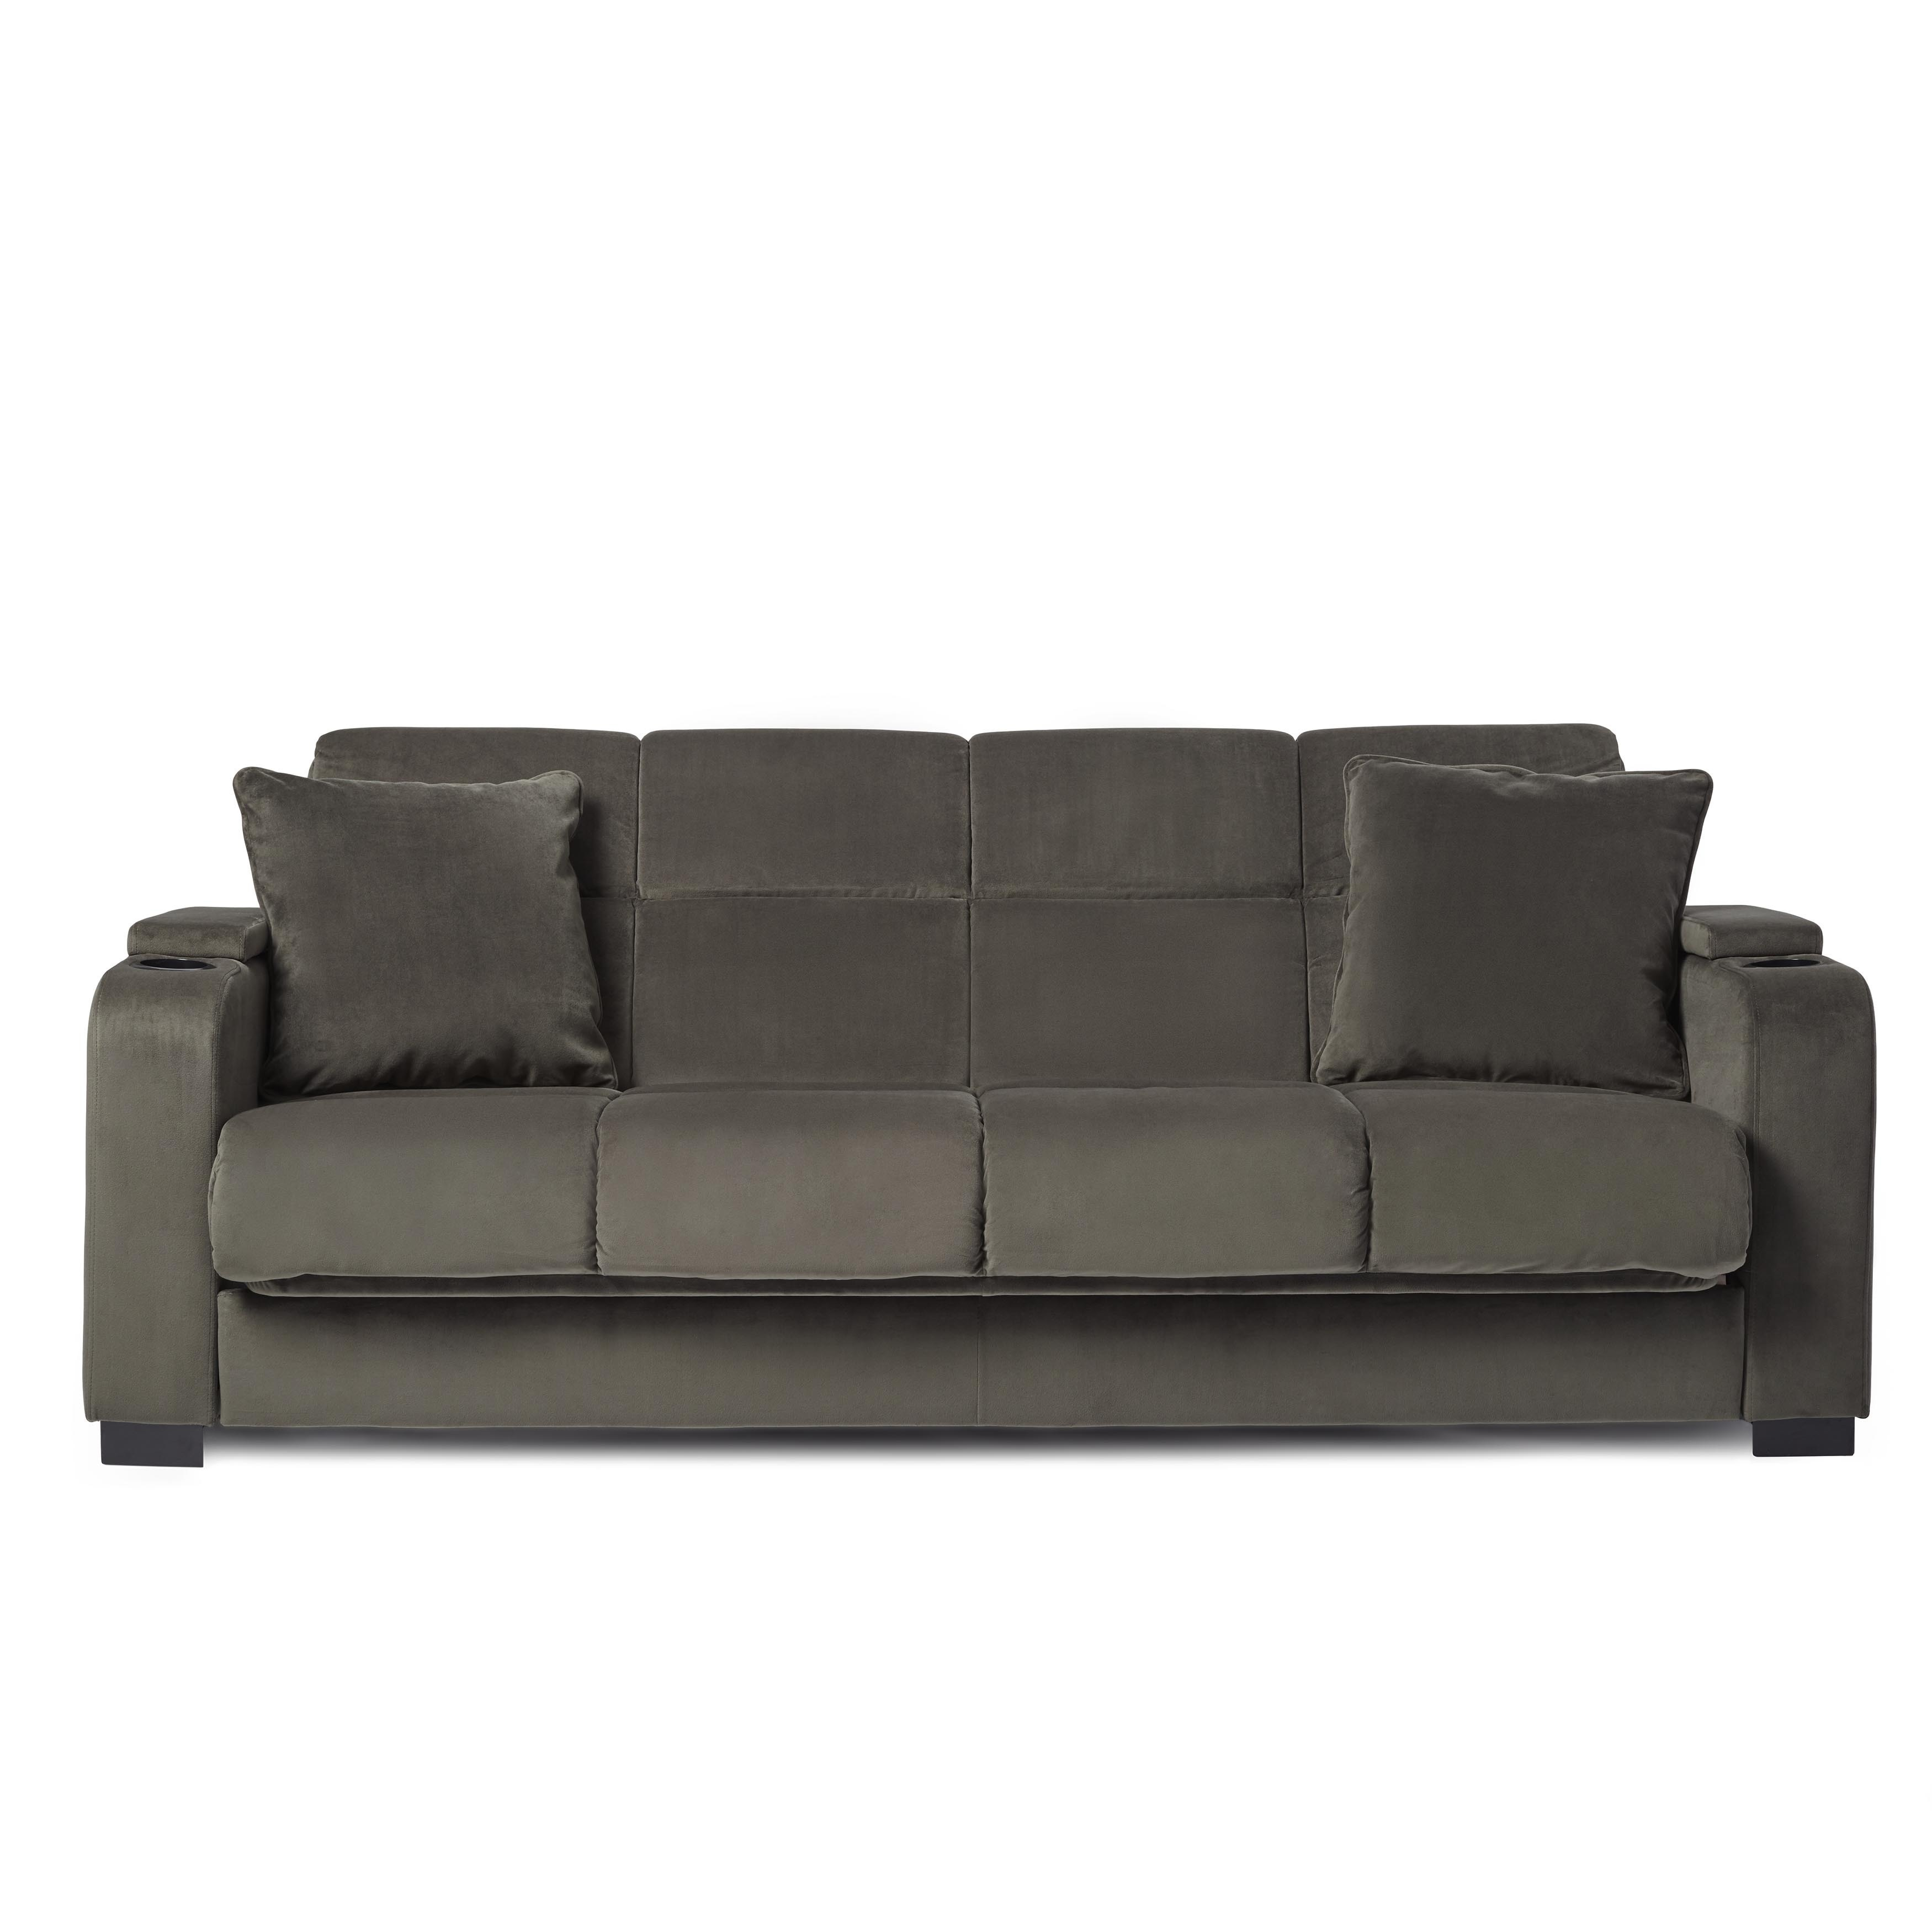 Sofa Bed Express Delivery Copper Grove Jessie Grey Velvet Convert A Couch Futon Sofa Sleeper